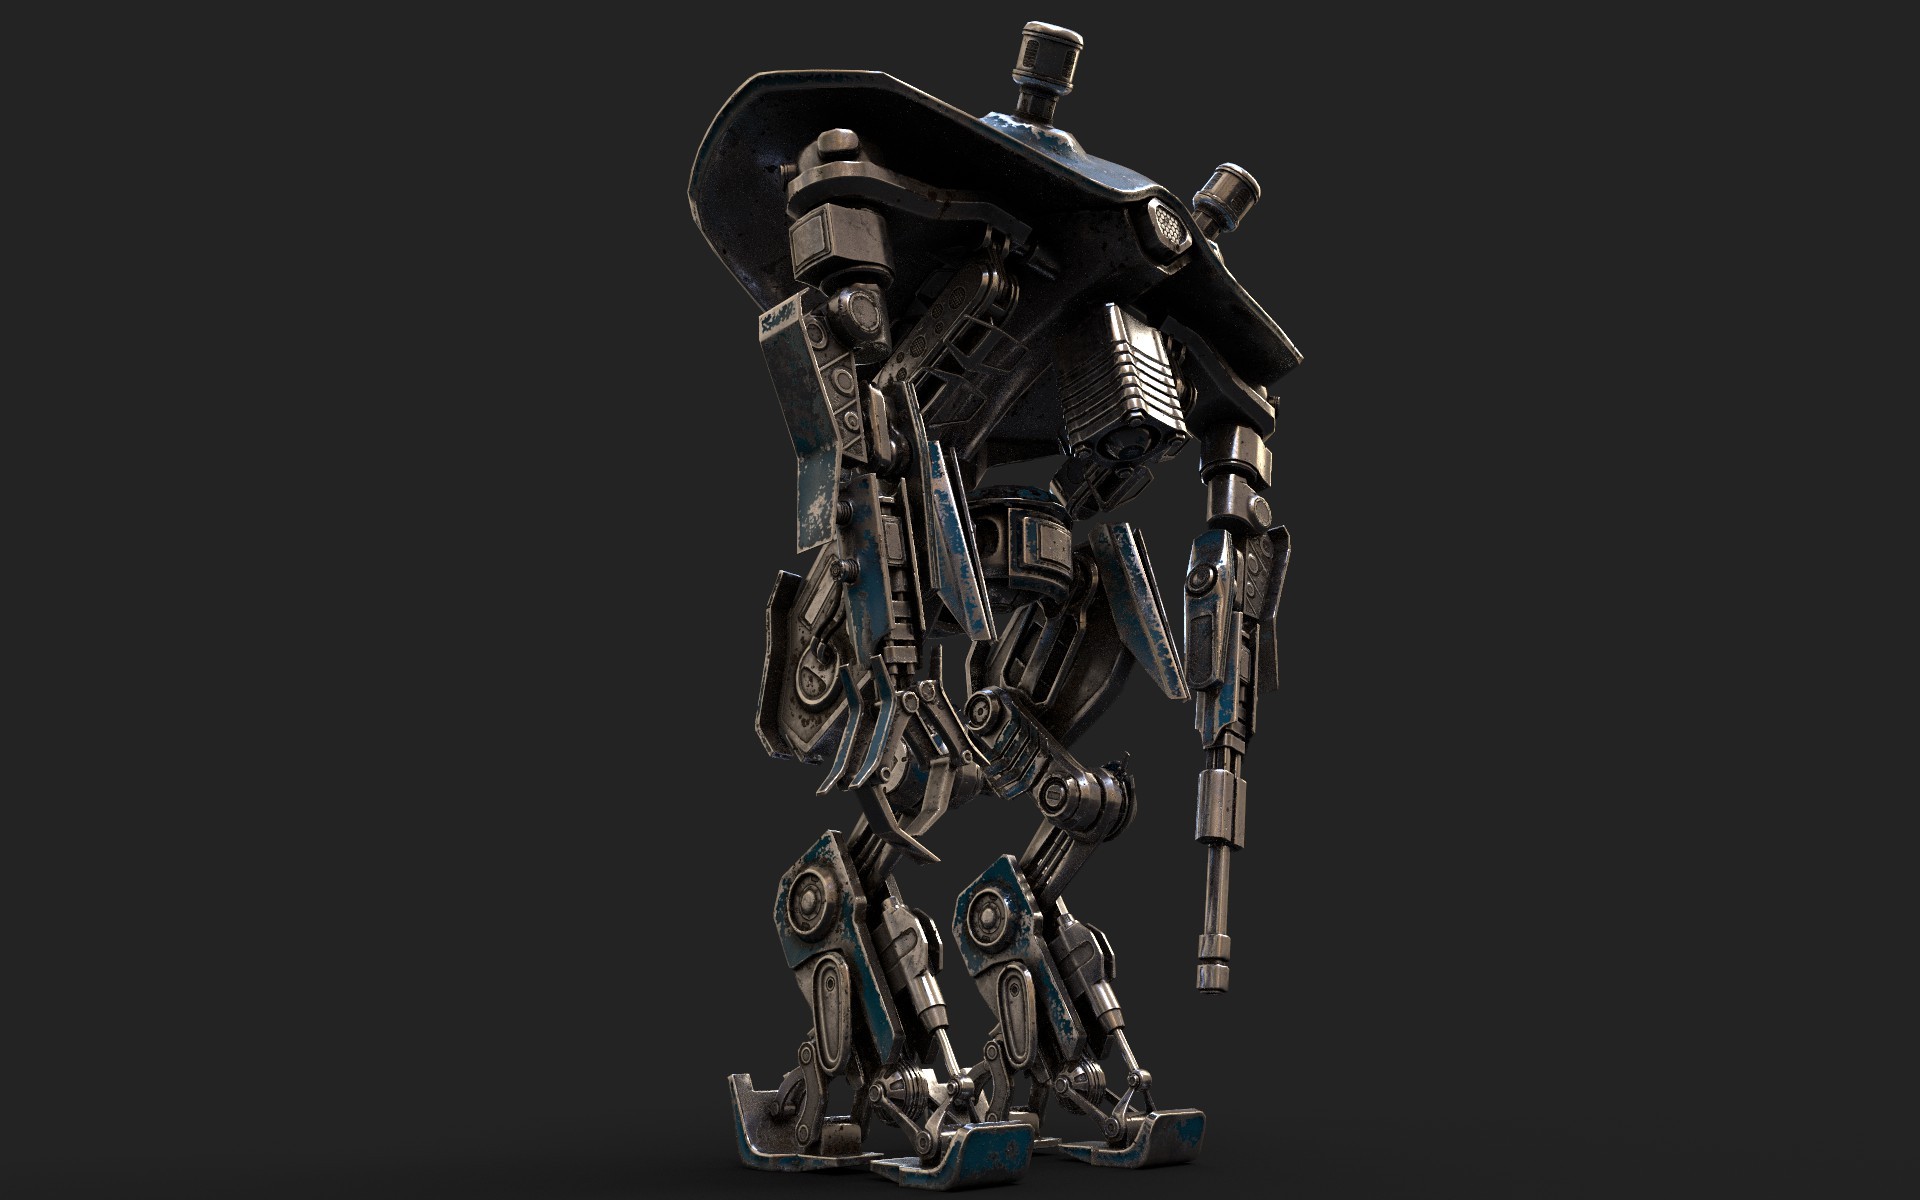 heavy robot vex700 3d model 3ds max fbx obj 279580